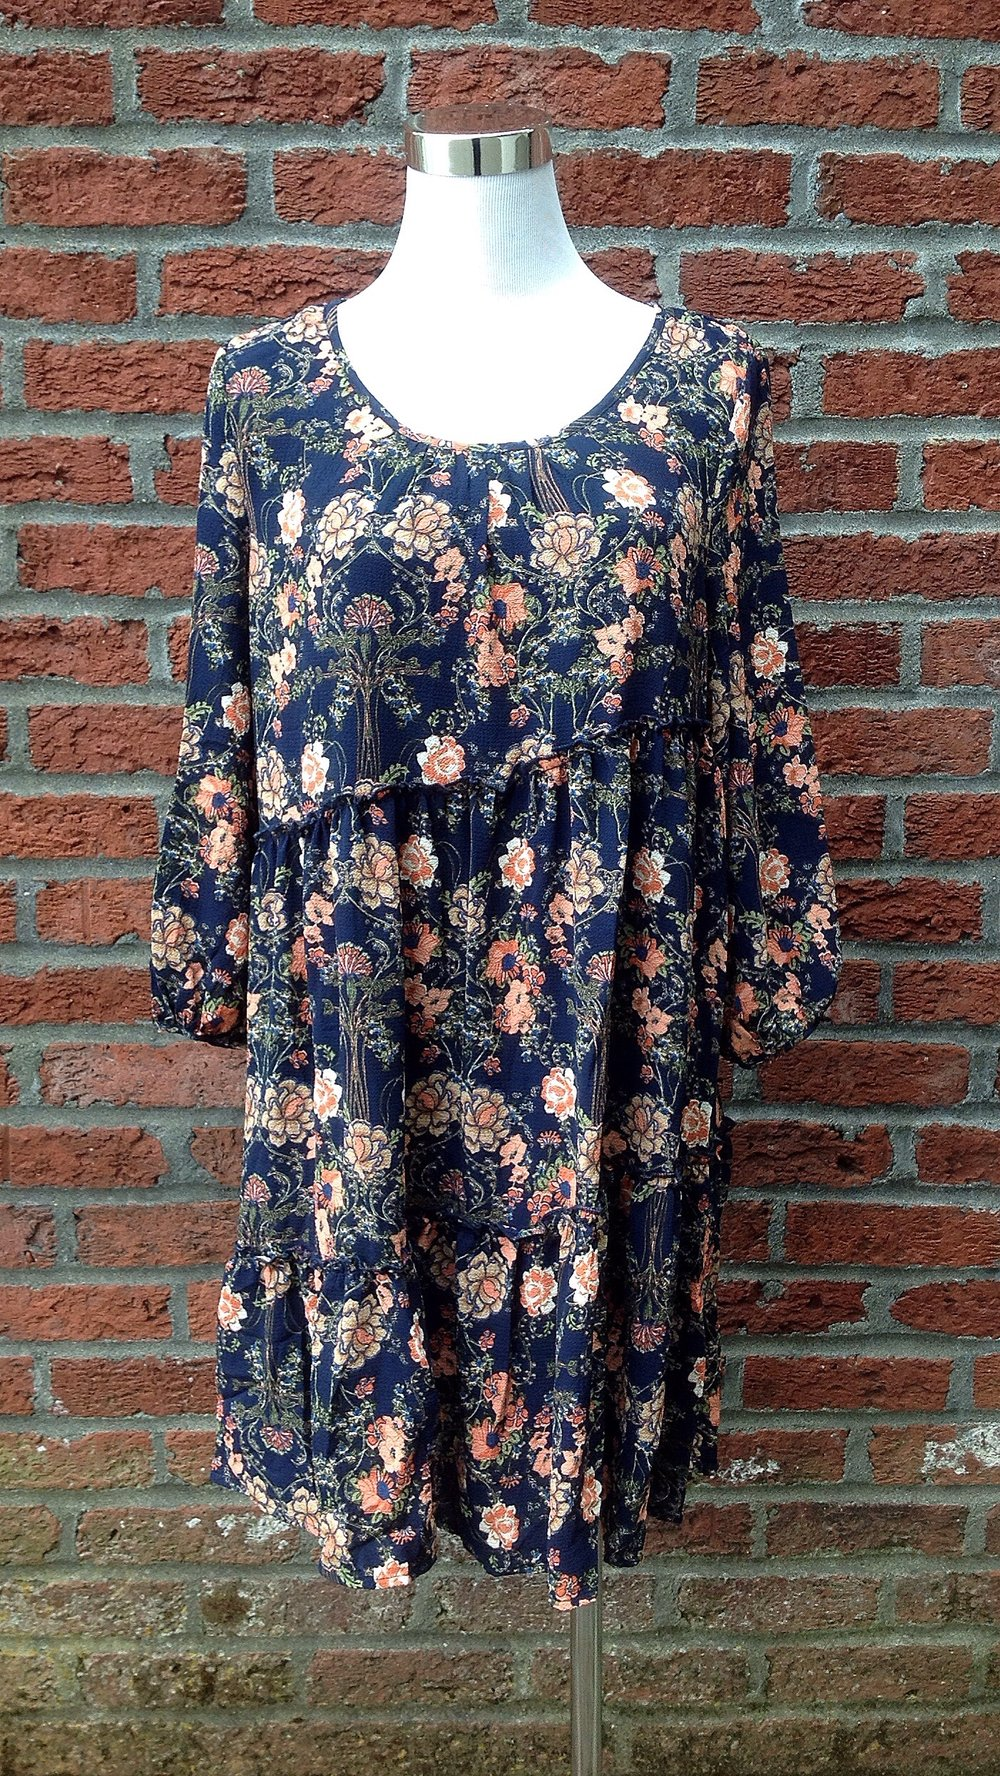 Navy floral babydoll dress with 3/4 sleeves, $42